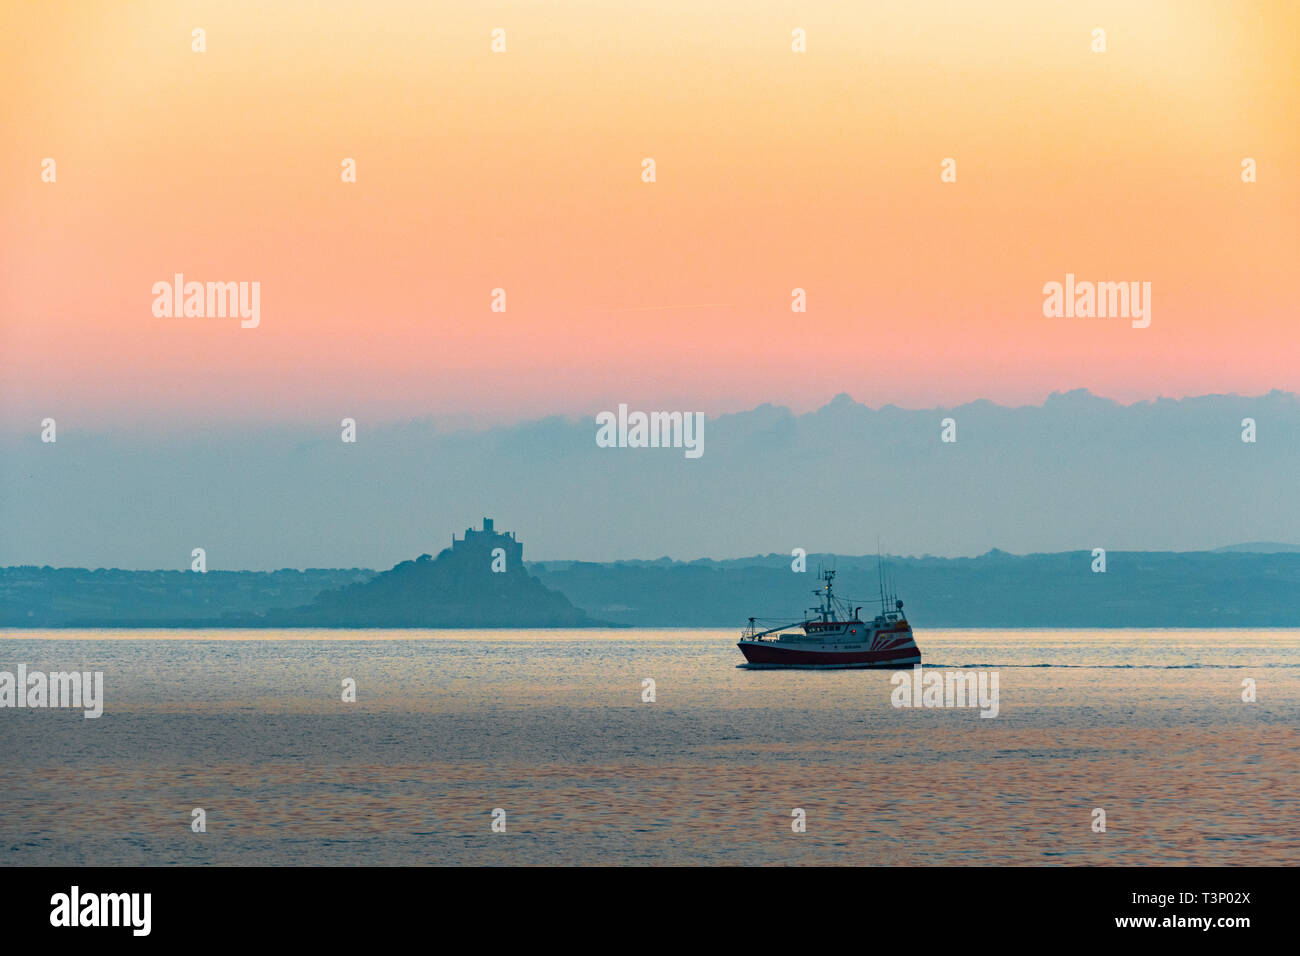 Newlyn, Cornwall, UK. 11th Apr, 2019. UK Weather. A chilly but glorious start to the day at Newlyn at sunrise. Seen here fishing boat from Newlyn. Credit: Simon Maycock/Alamy Live News Stock Photo